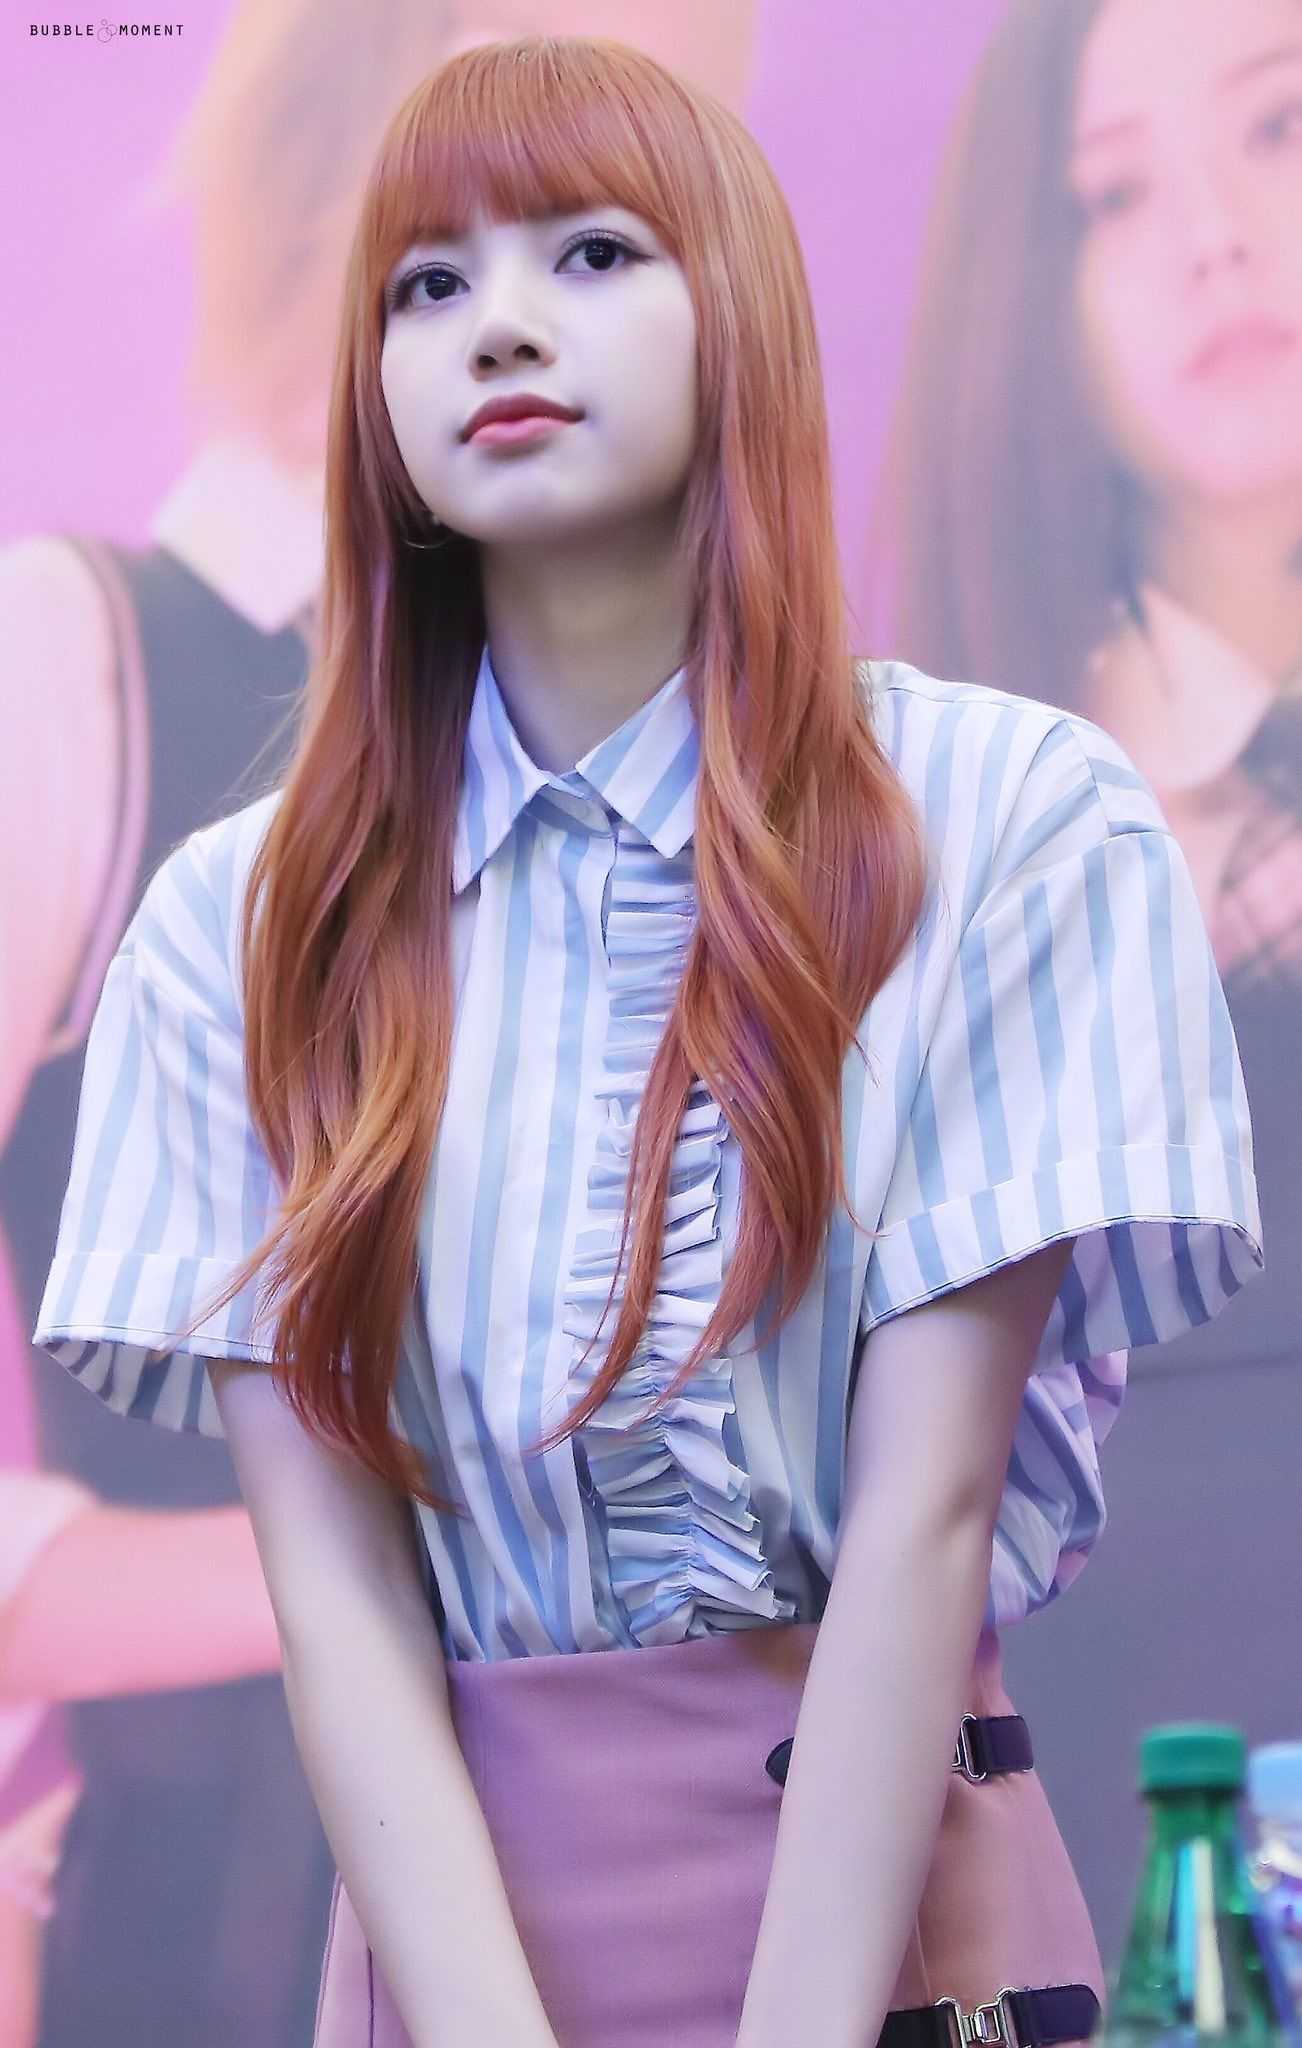 Why does Black Pink Lisa have so many fans? - Quora